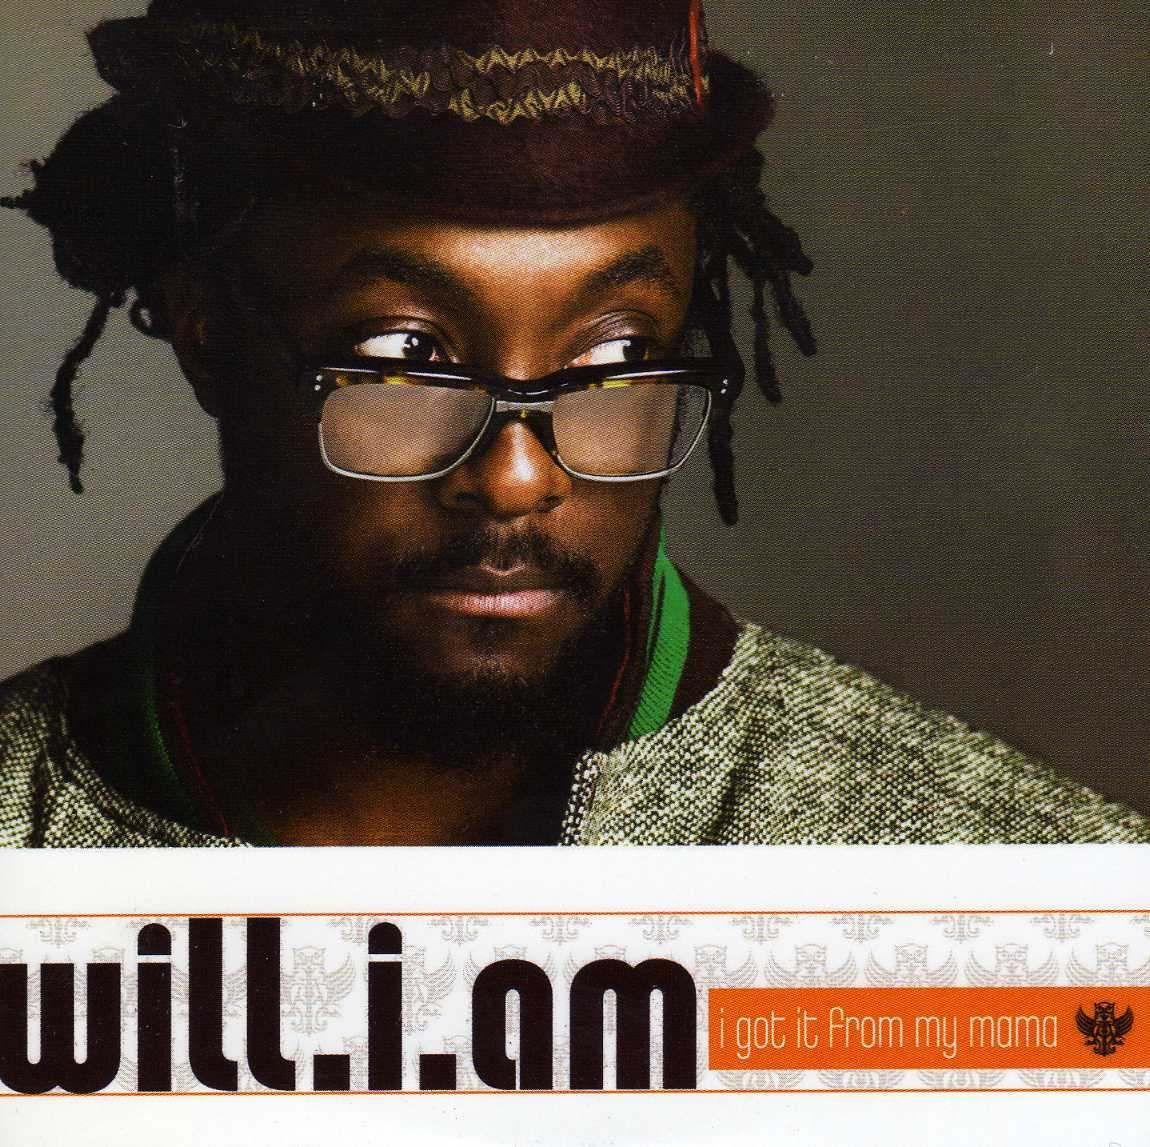 will.i.am – I Got It from My Mama (single cover art)